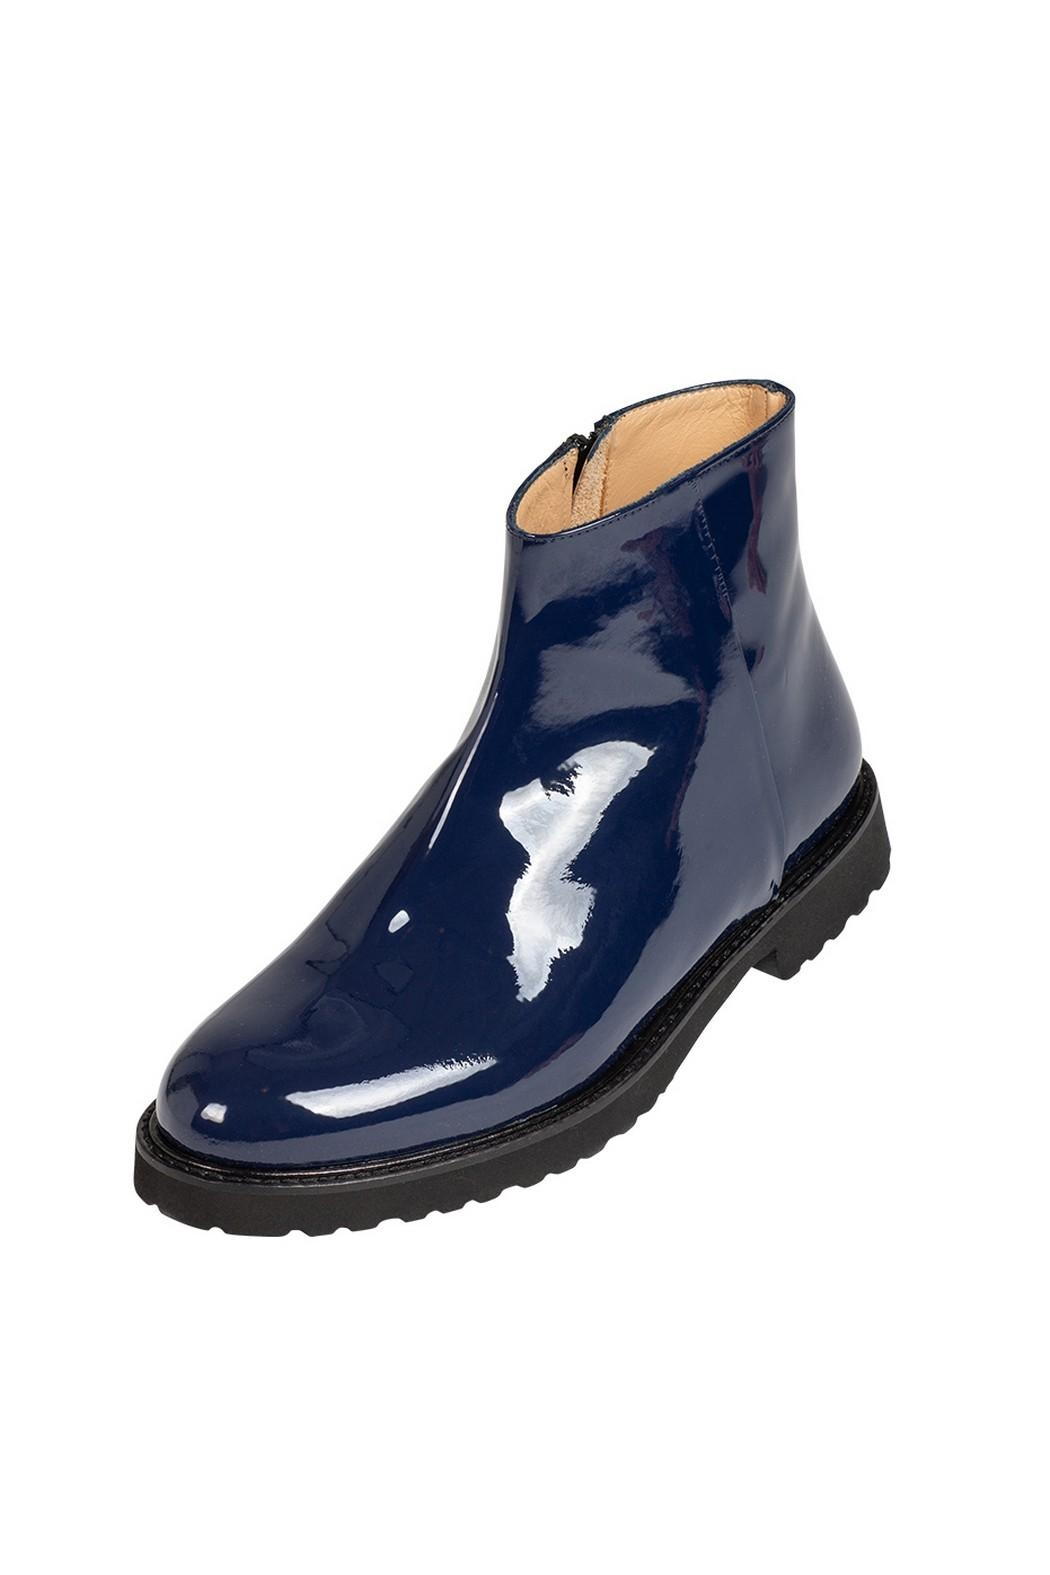 Pascucci Cobalt-Blue Patent-Leather Ankle-Boots - Main Image